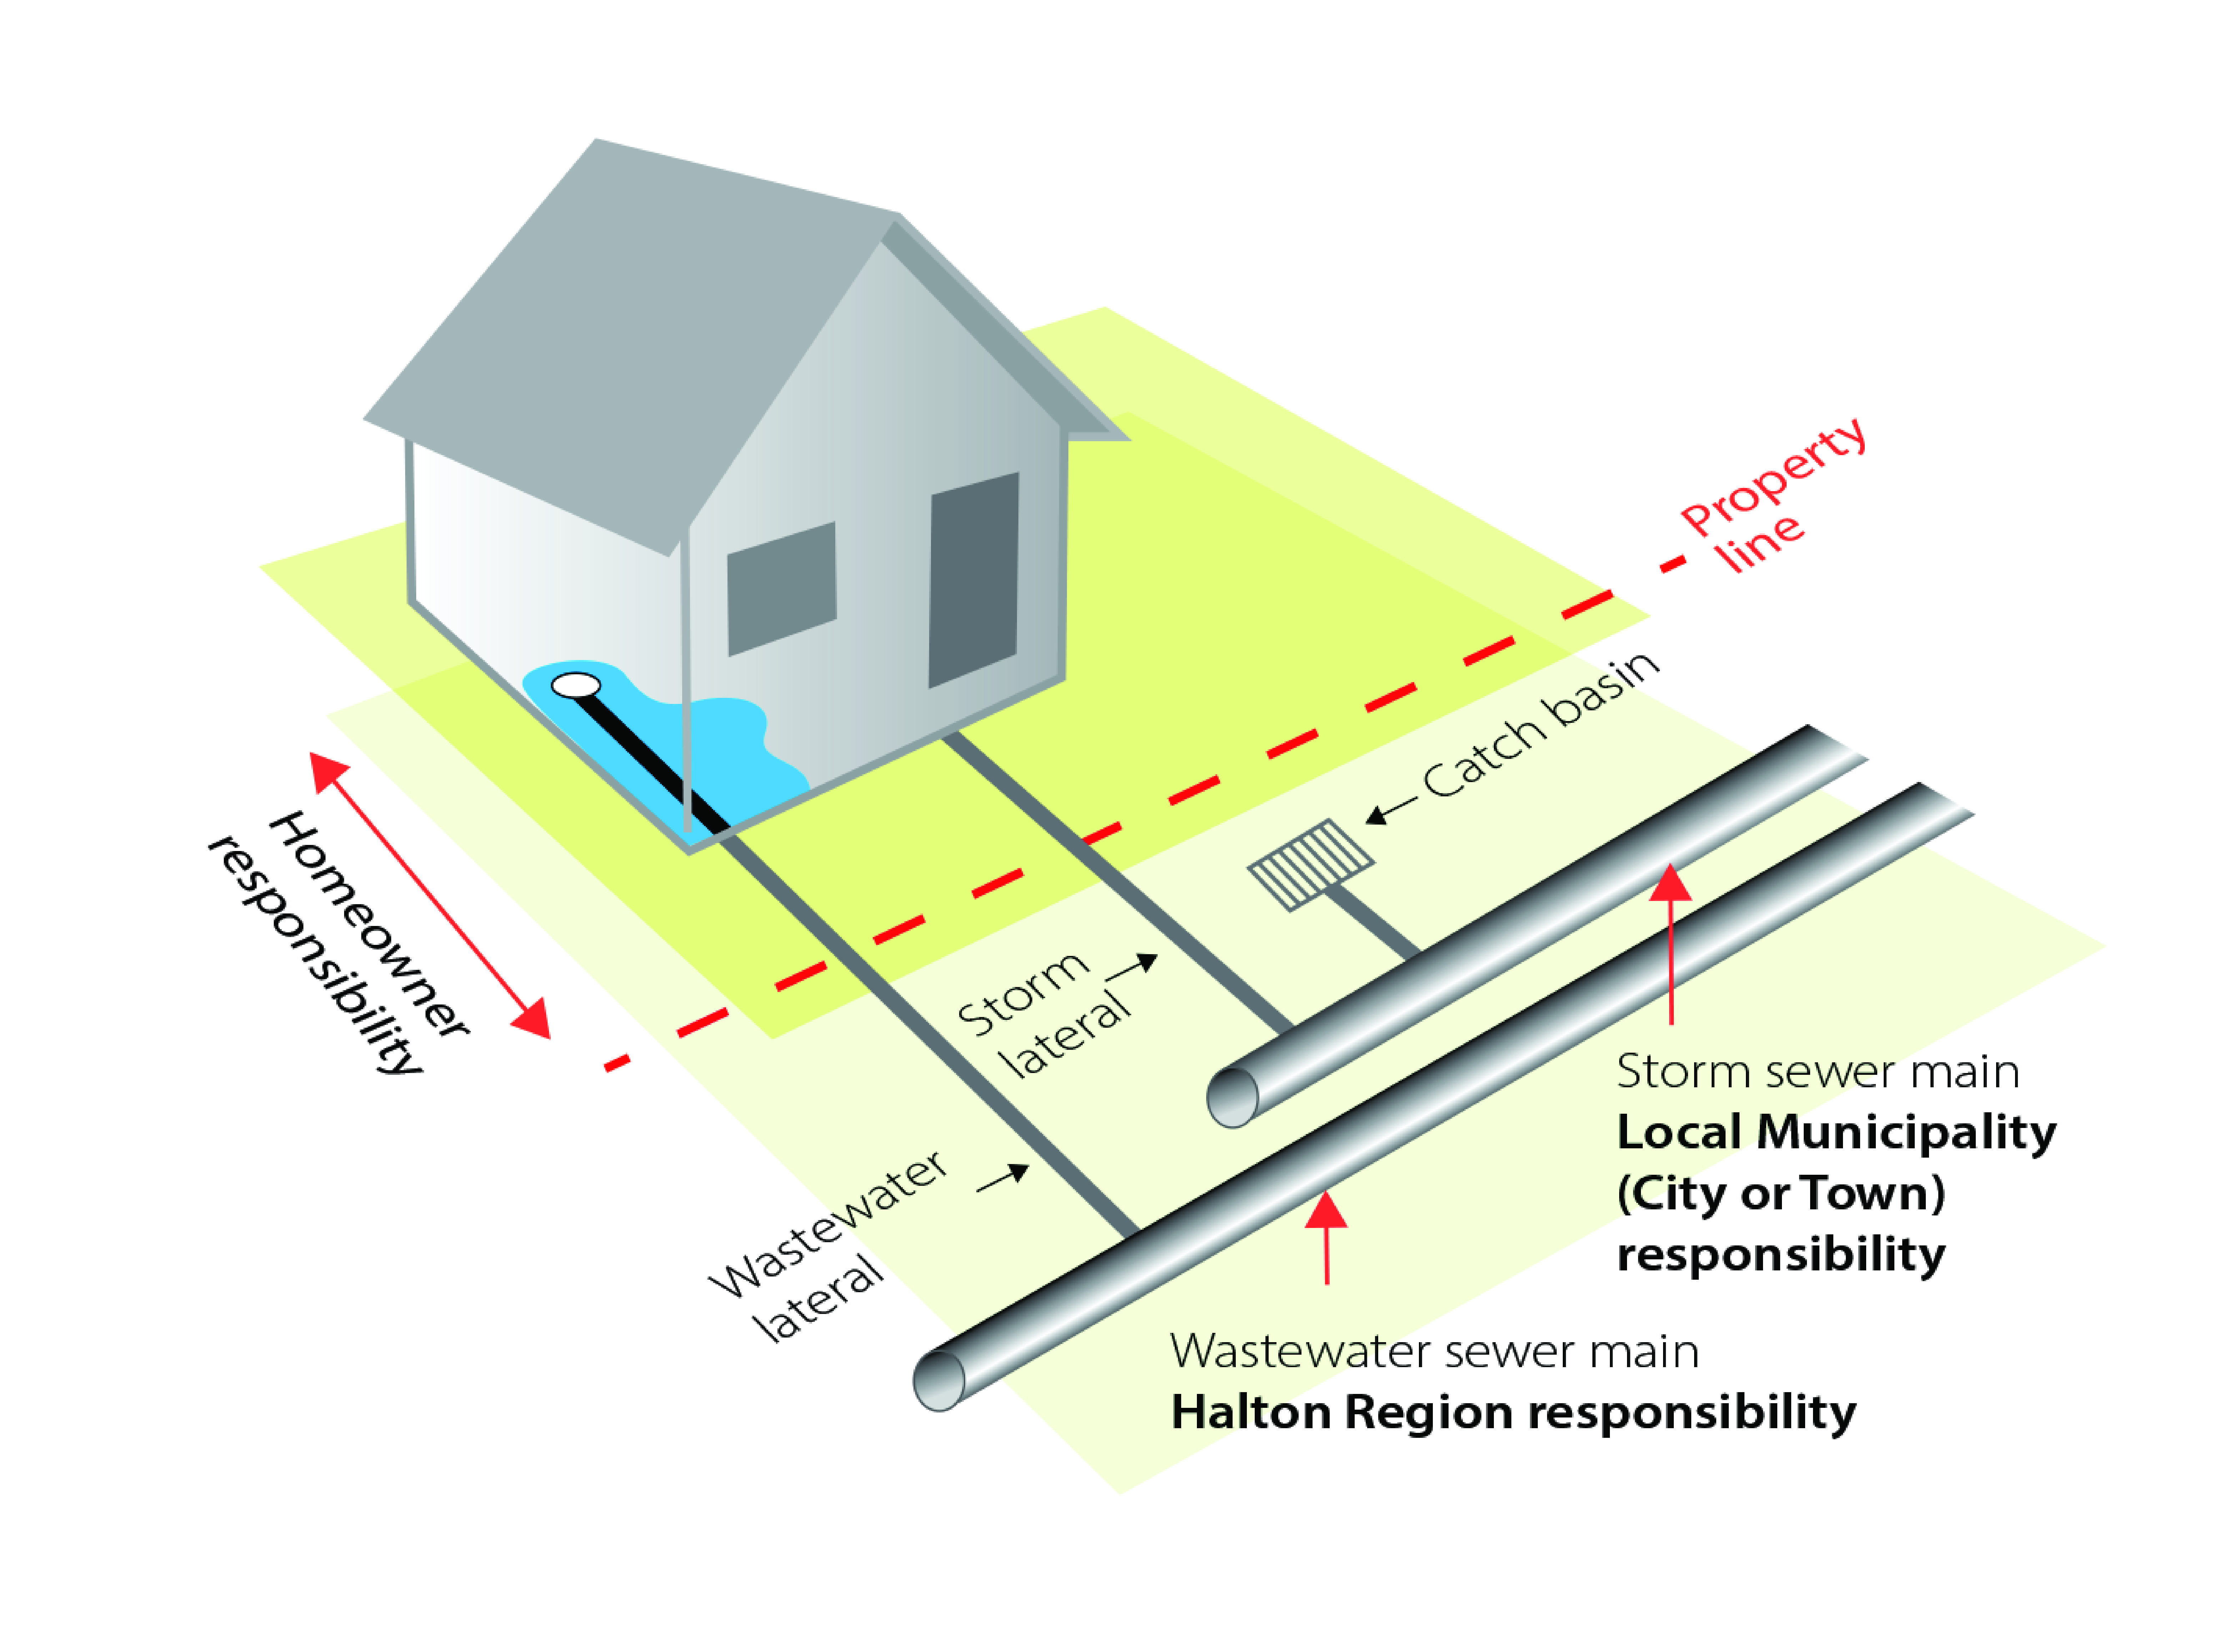 Diagram of house that shows homeowner responsibility, property line, storm lateral, wasterwater lateral, storm sewer main and wastewater sewer main